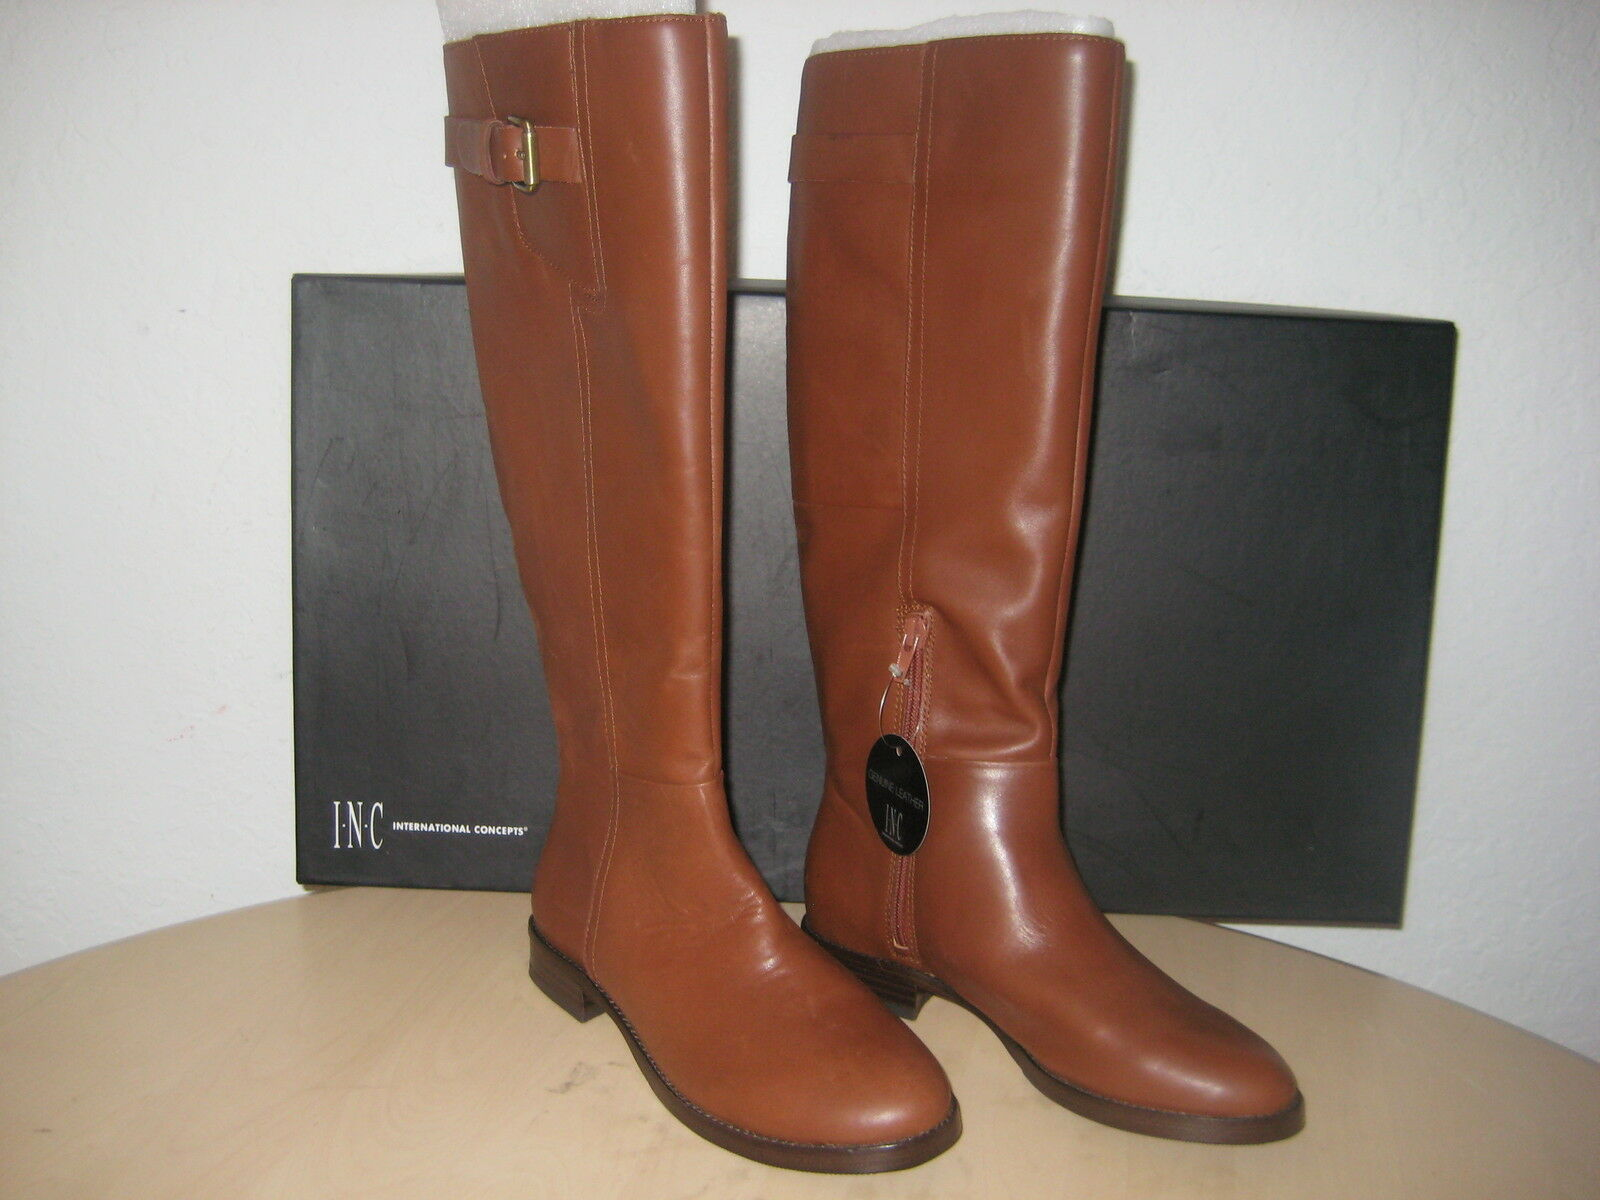 INC International Concepts shoes Size 5.5 M Womens New Coco Brown Fashion Boots